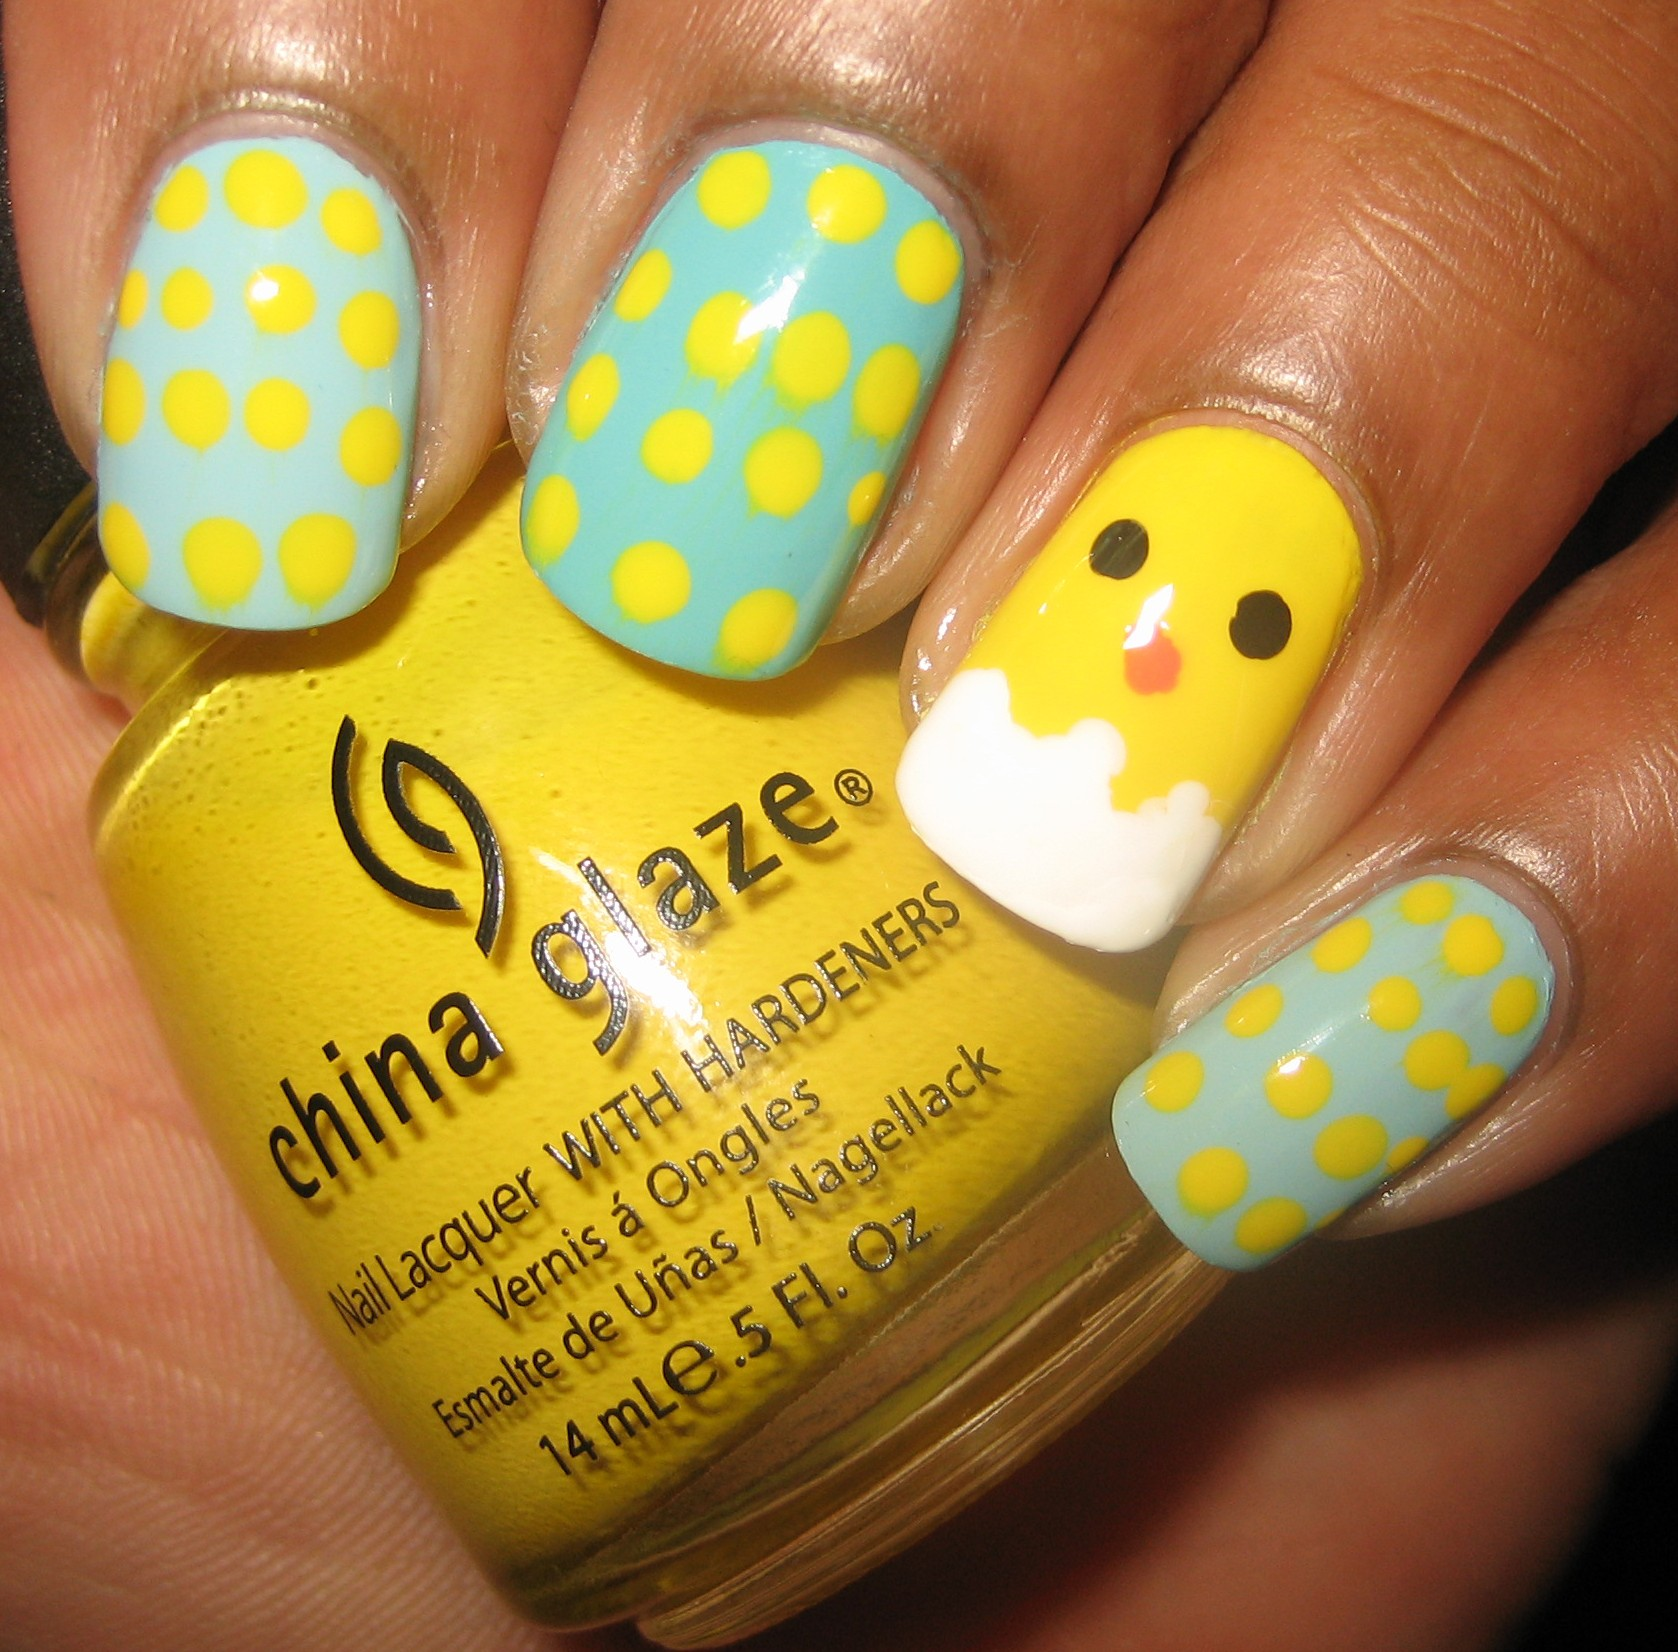 easter nail designs 18 30 Awesome Easter Nail Designs 2015 30 Awesome Easter Nail Designs 2015 easter nail designs 18